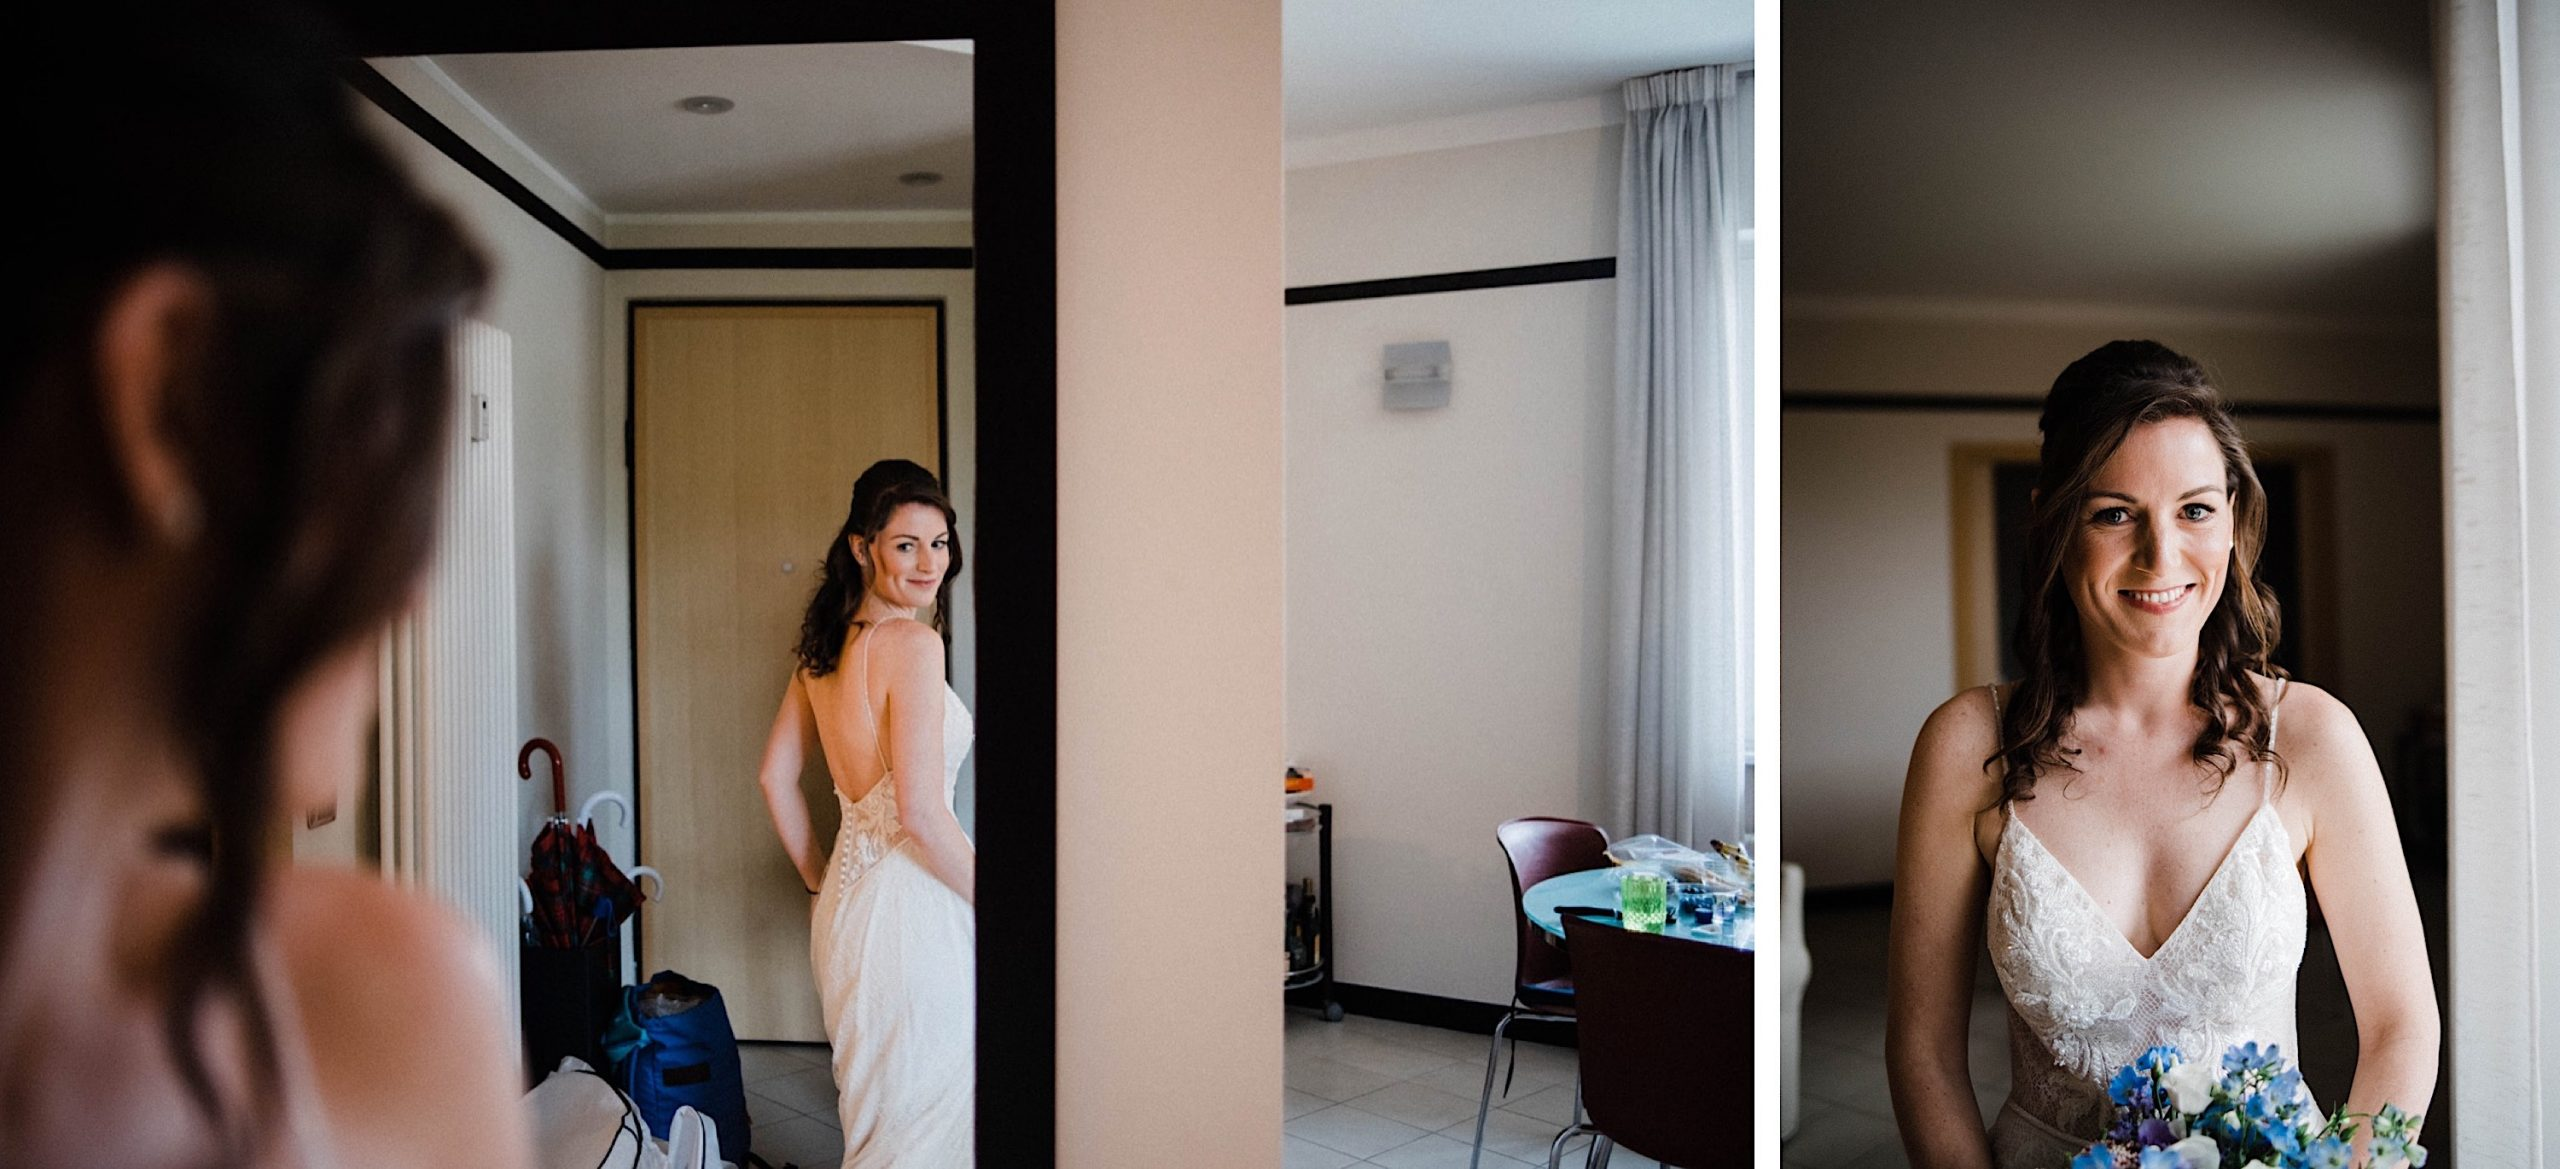 Destination Wedding Photography of a bride checking her dress in the mirror, and a classic portrait of her.